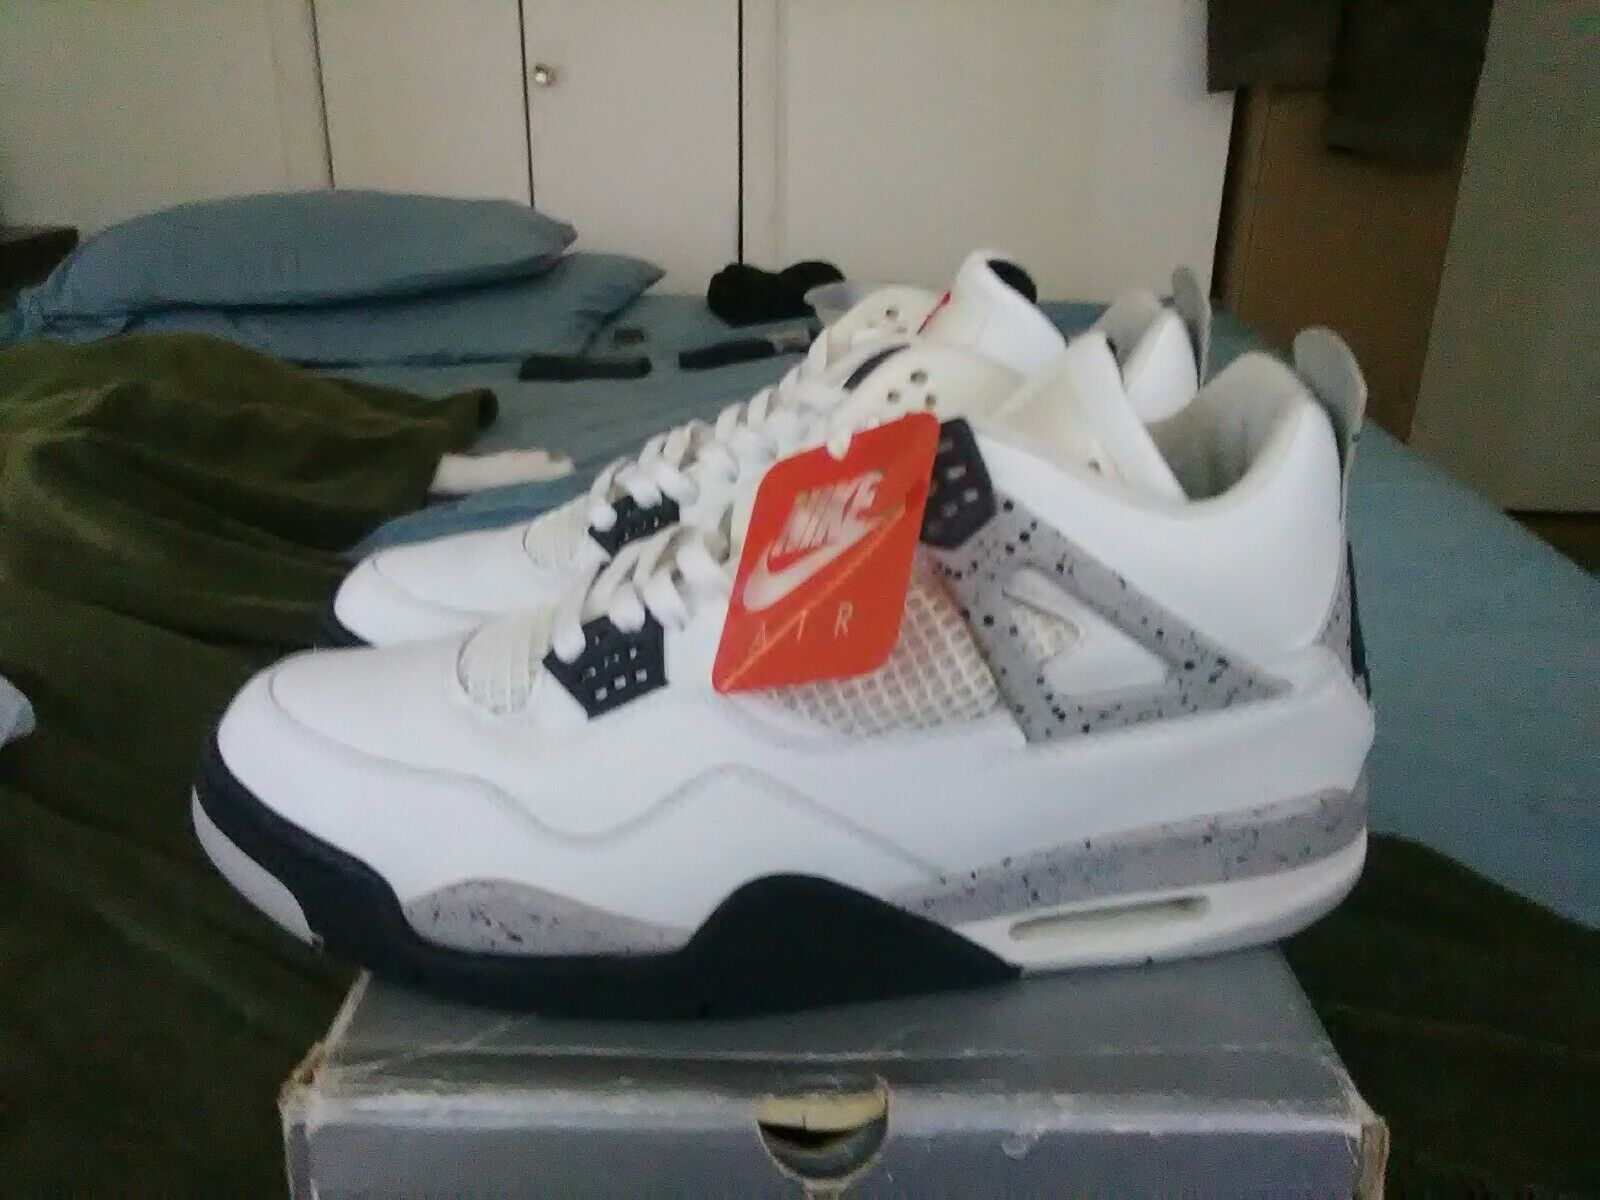 Nike Air Jordan IV 1999 OG WHITE CEMENT 136013 101 Size 13